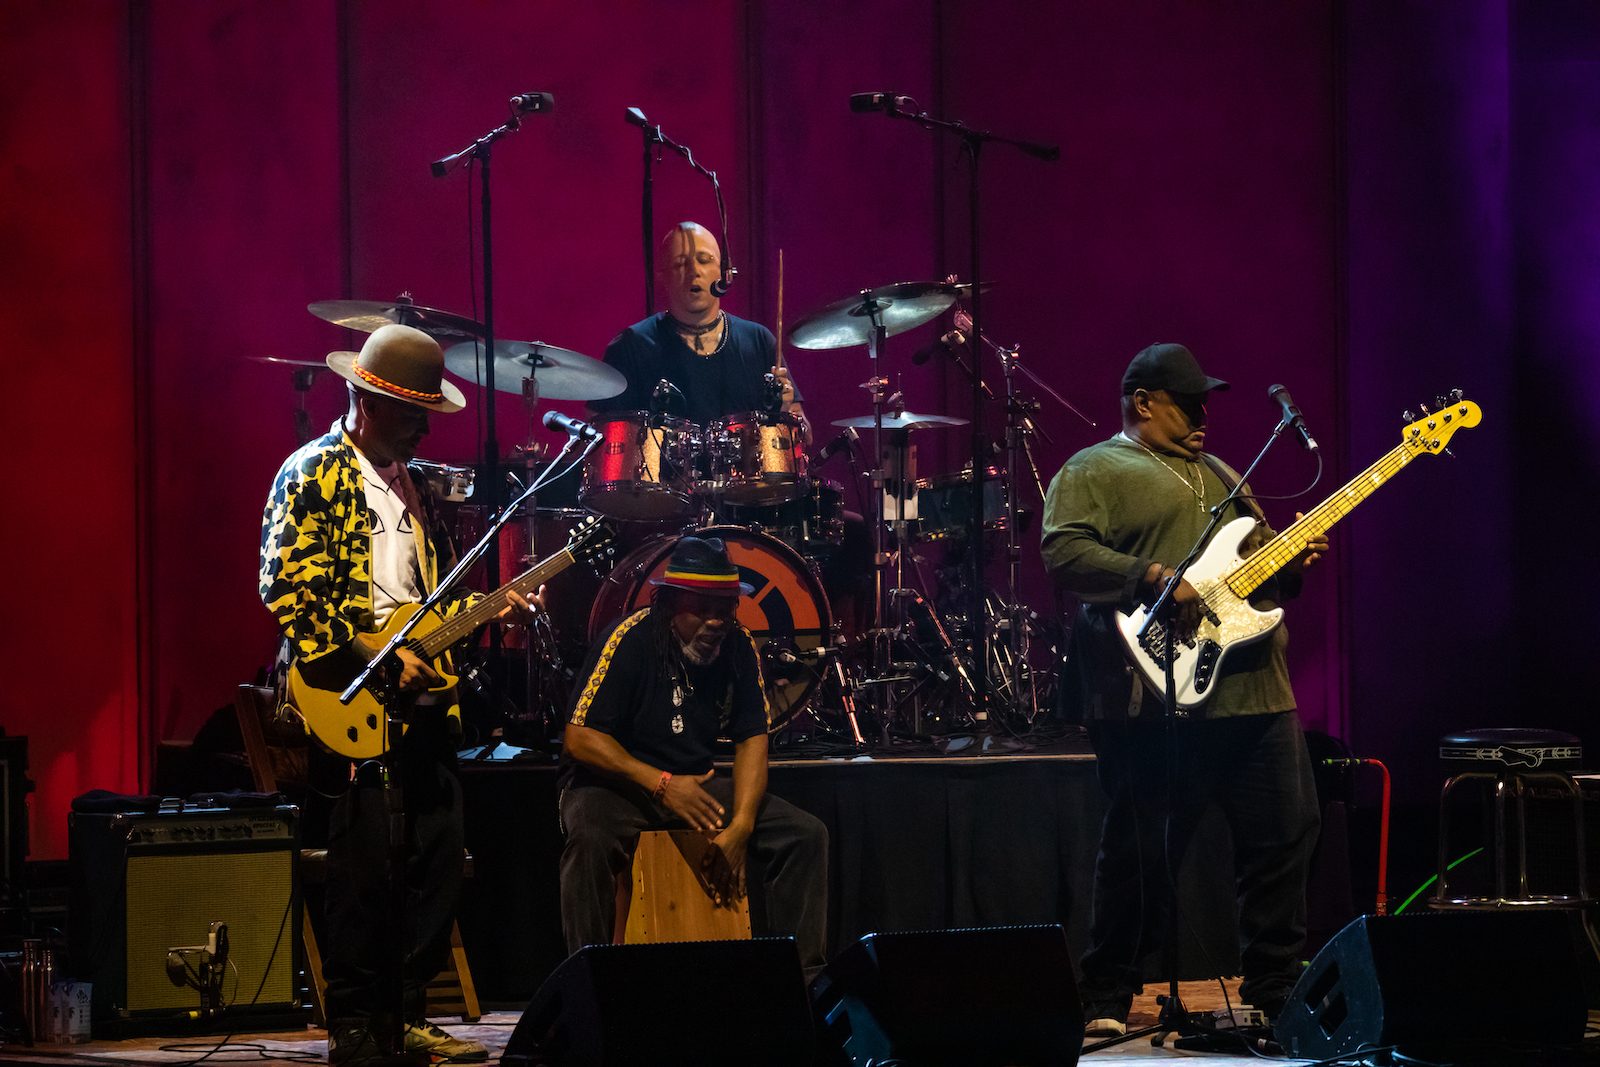 Ben Harper Delivers Magnetic Performance at Hollywood Bowl